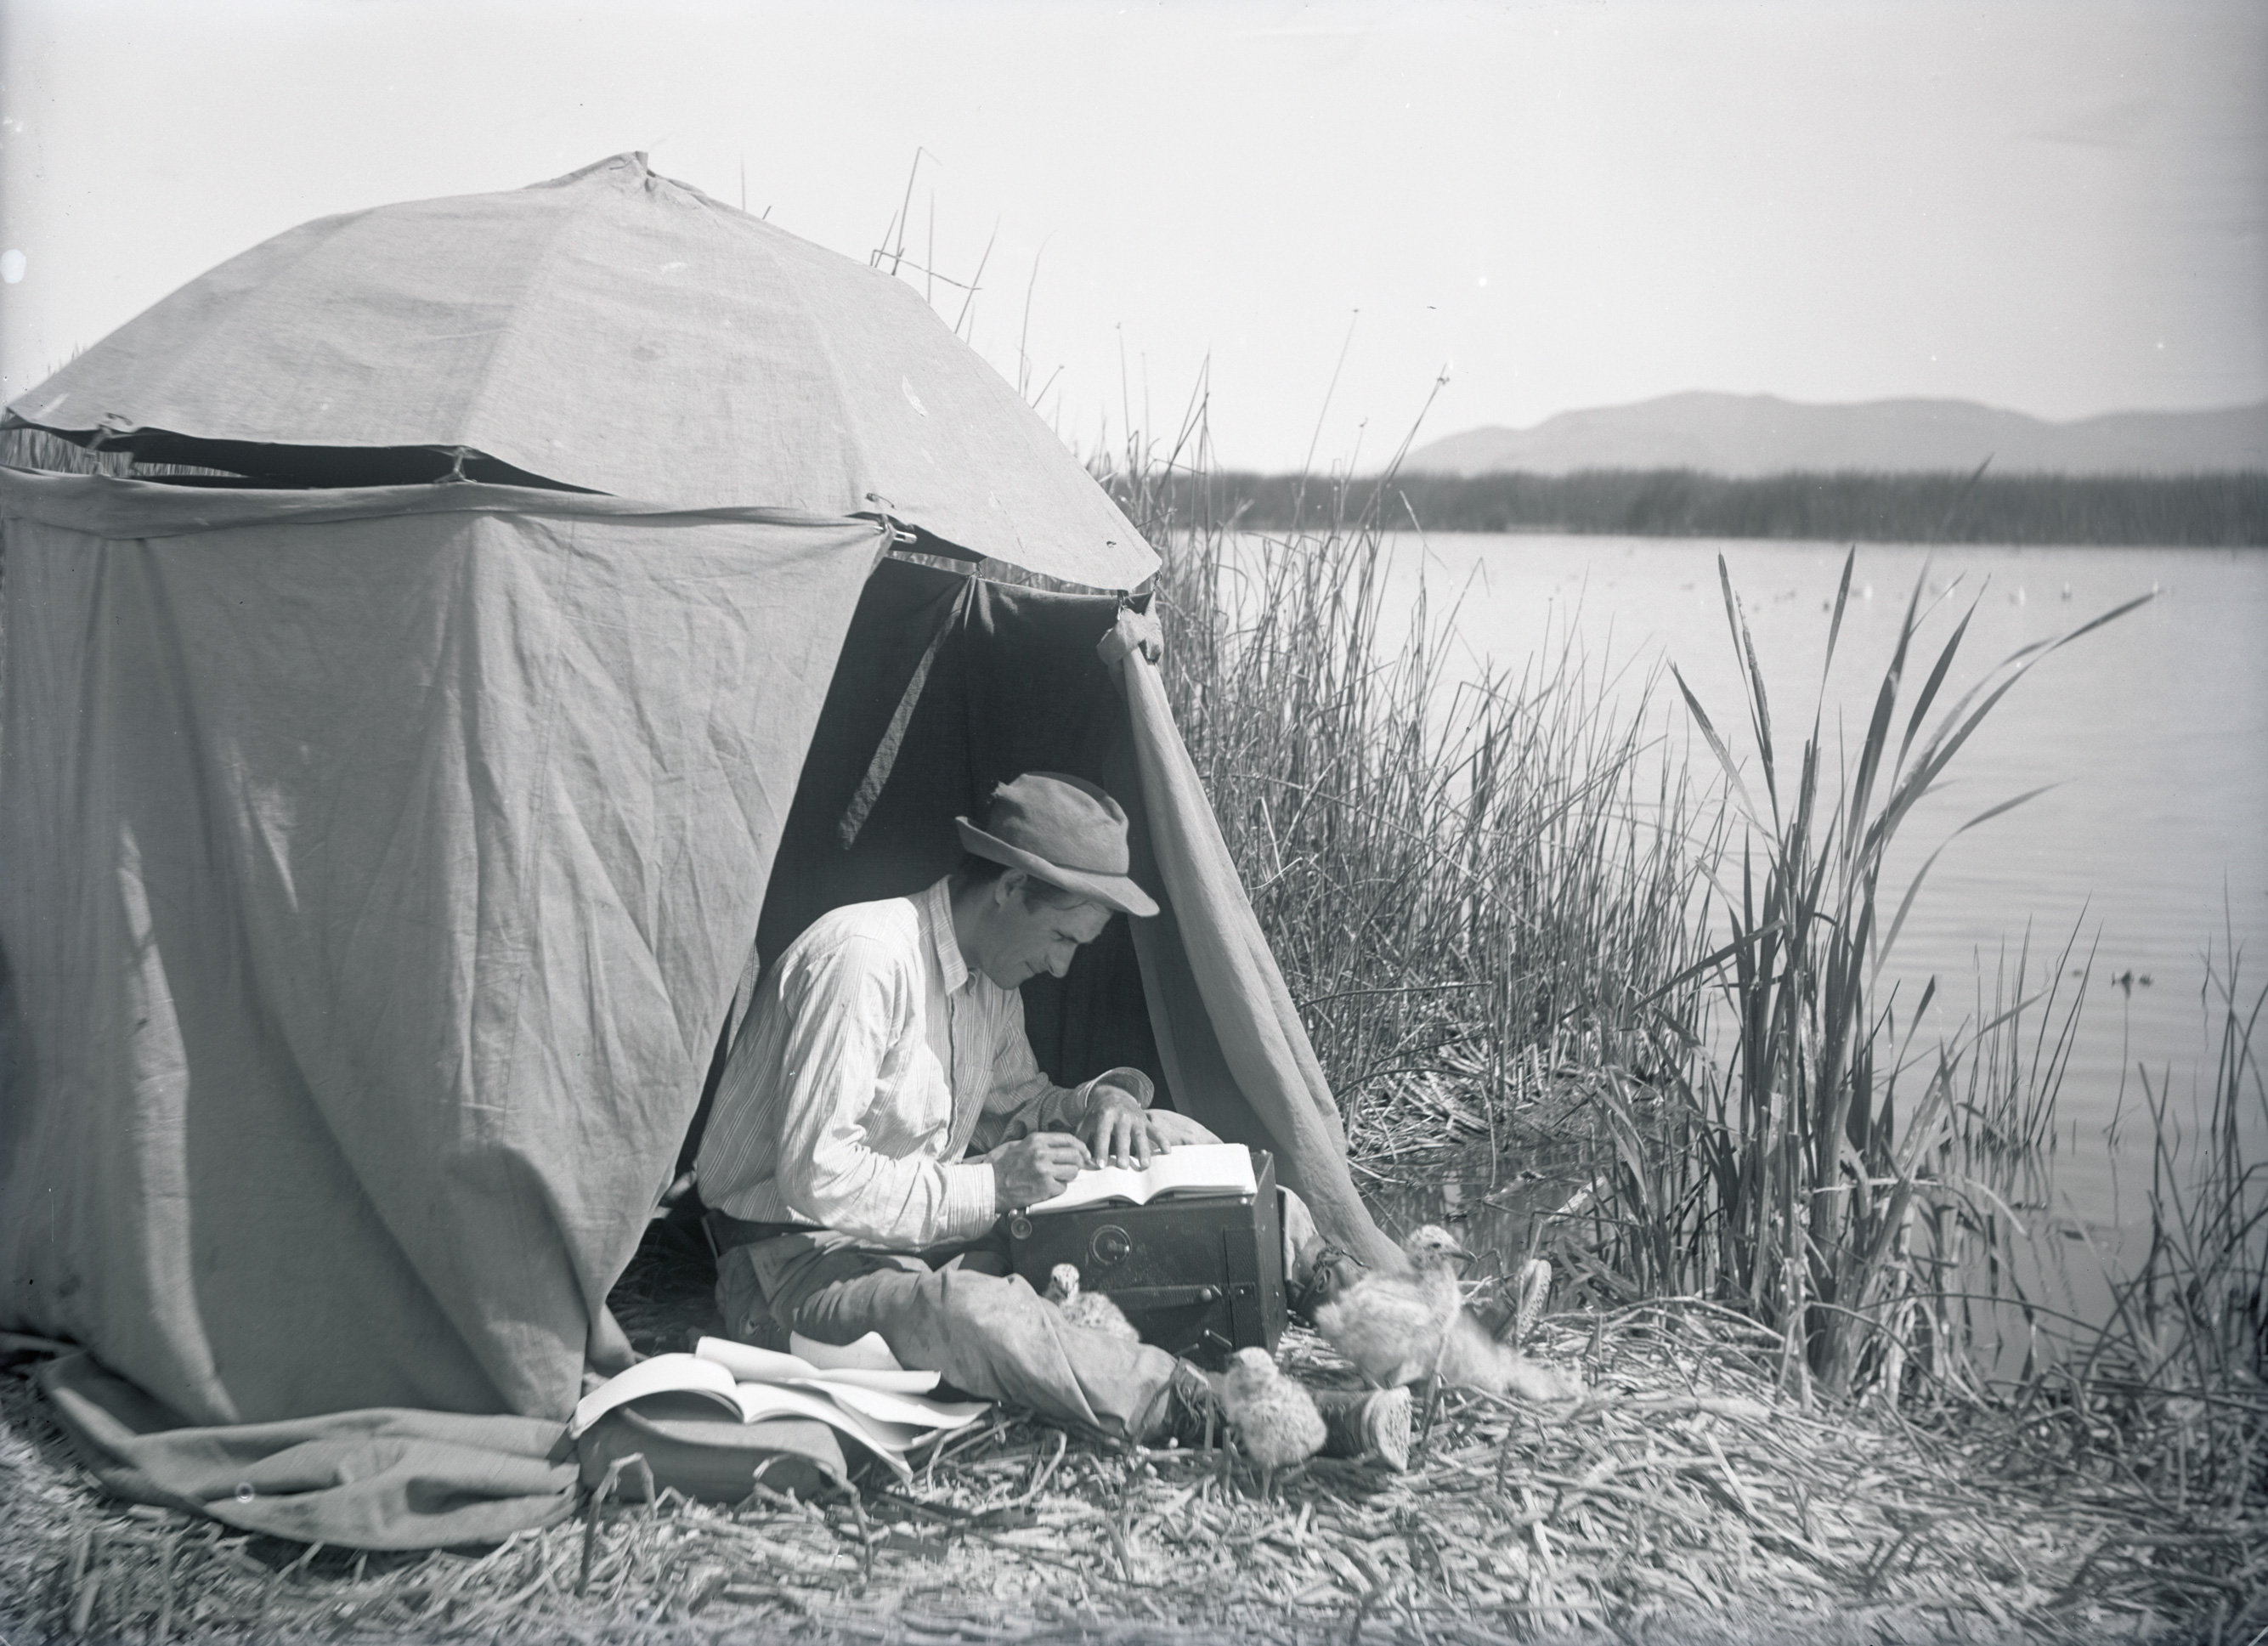 William L. Finley seated in front of an umbrella blind taking notes on the 1905 Klamath expedition with several small birds perched around his legs. Org. Lot 369, Finley A1600.